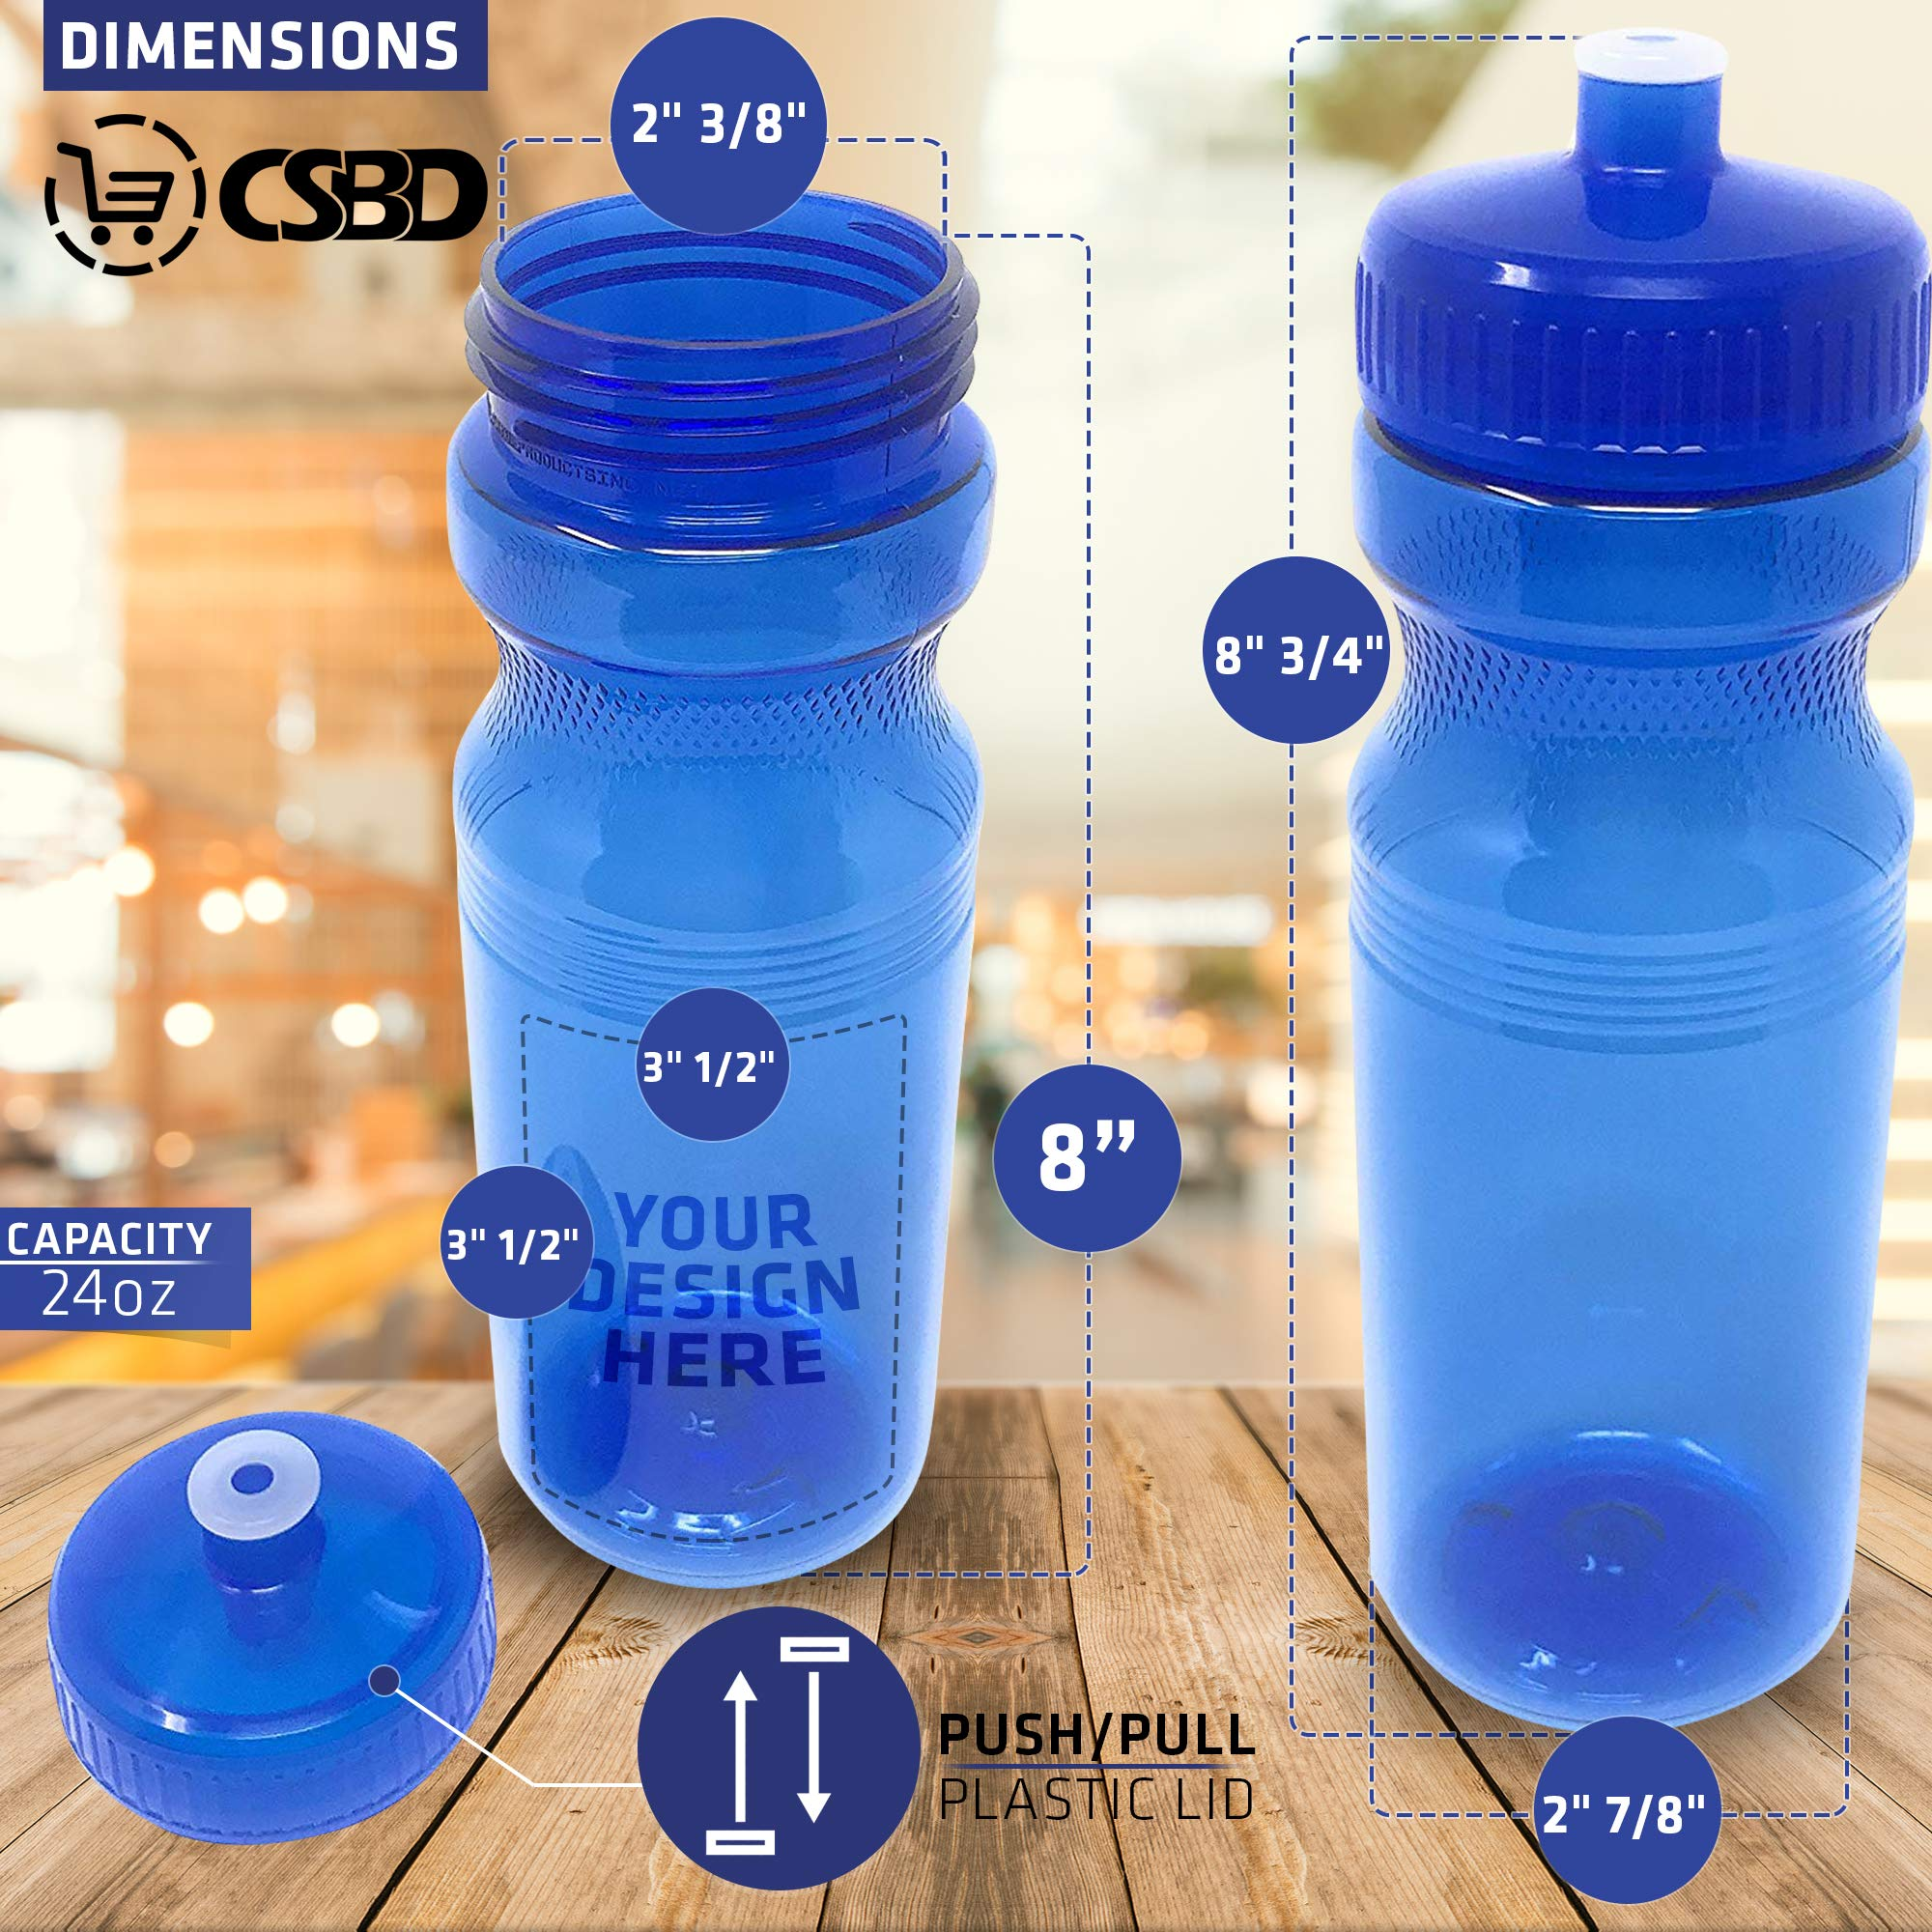 PET and HDPE Plastic CSBD Sport Water Bottle 4 Pack Made in USA Bulk BPA Free Multiple Colors /& Sizes Available